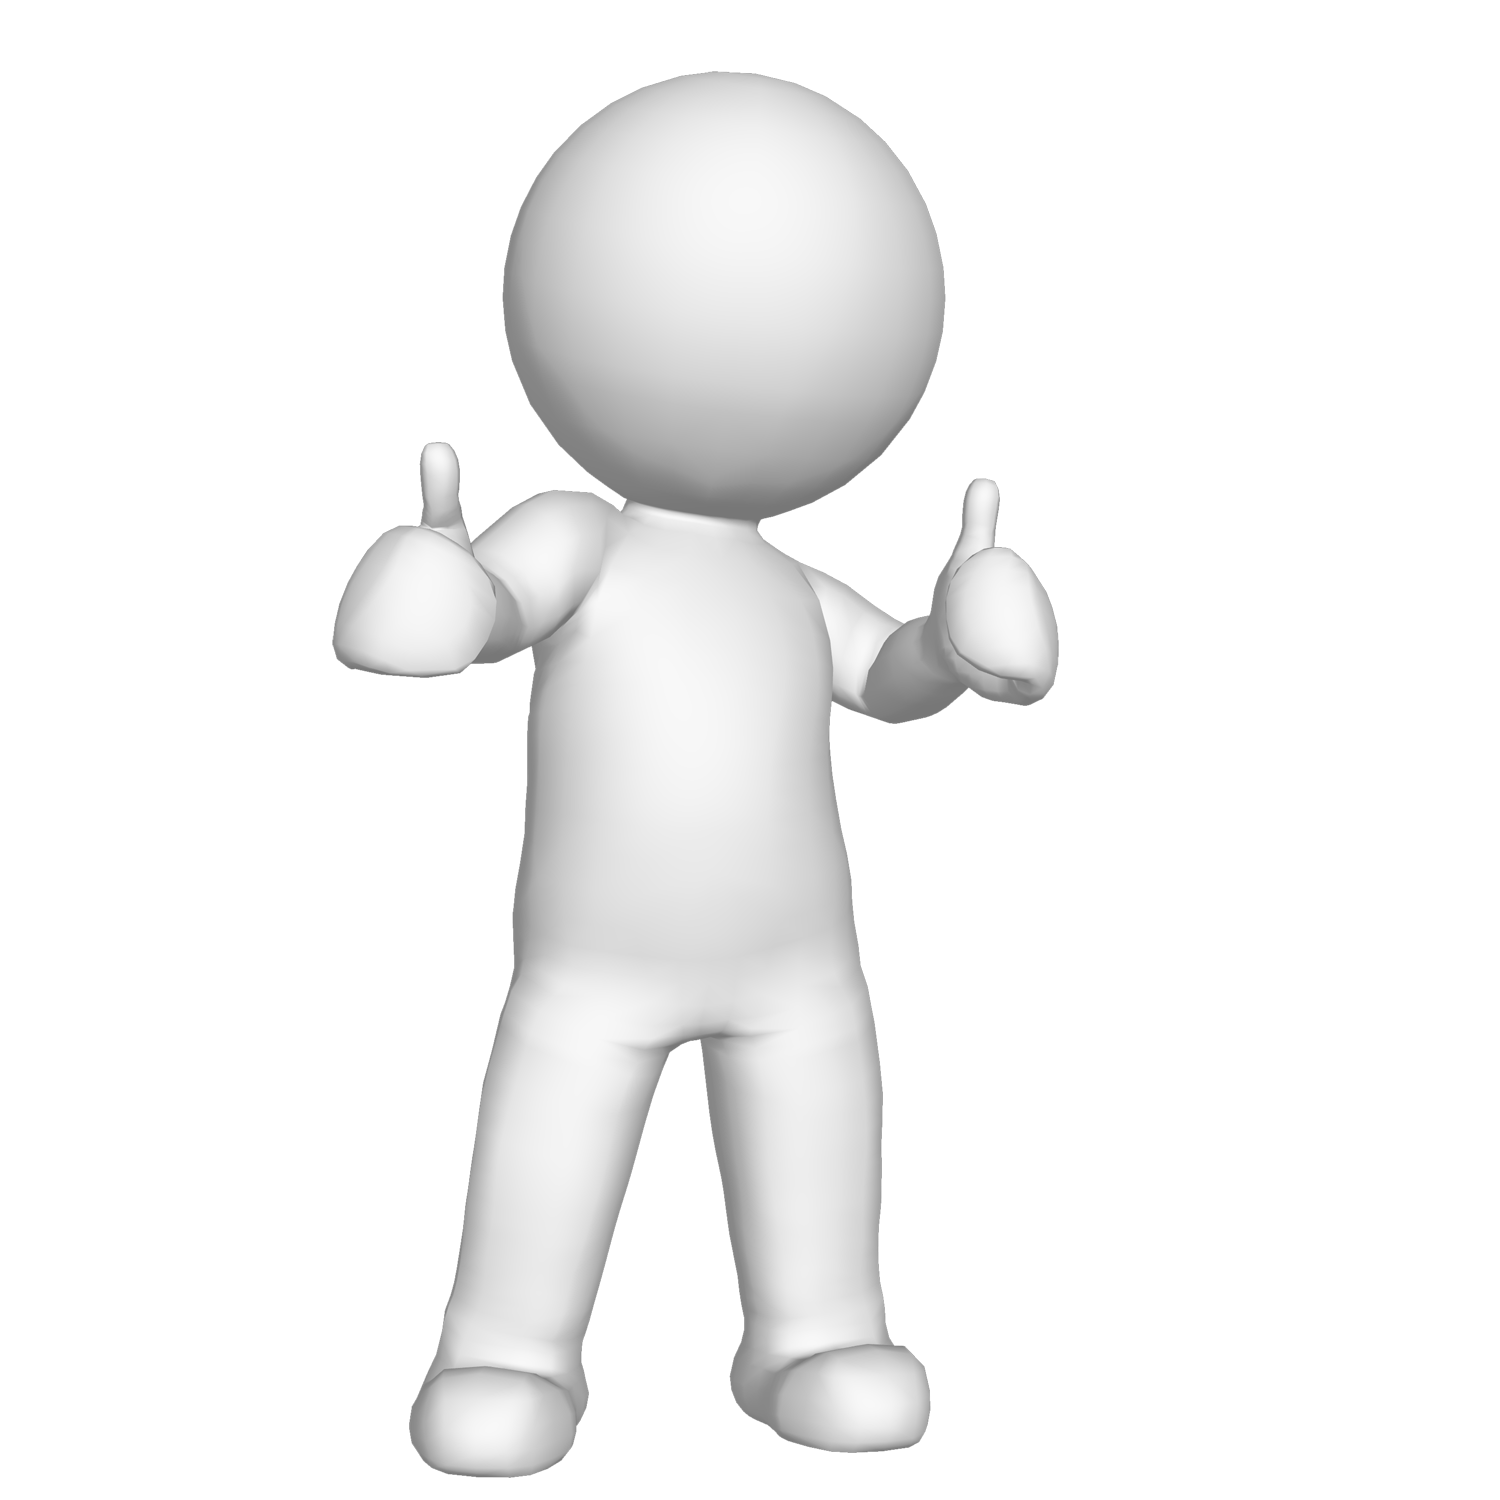 3d person clipart release image freeuse Thoughts clipart 3d person, Thoughts 3d person Transparent FREE for ... image freeuse